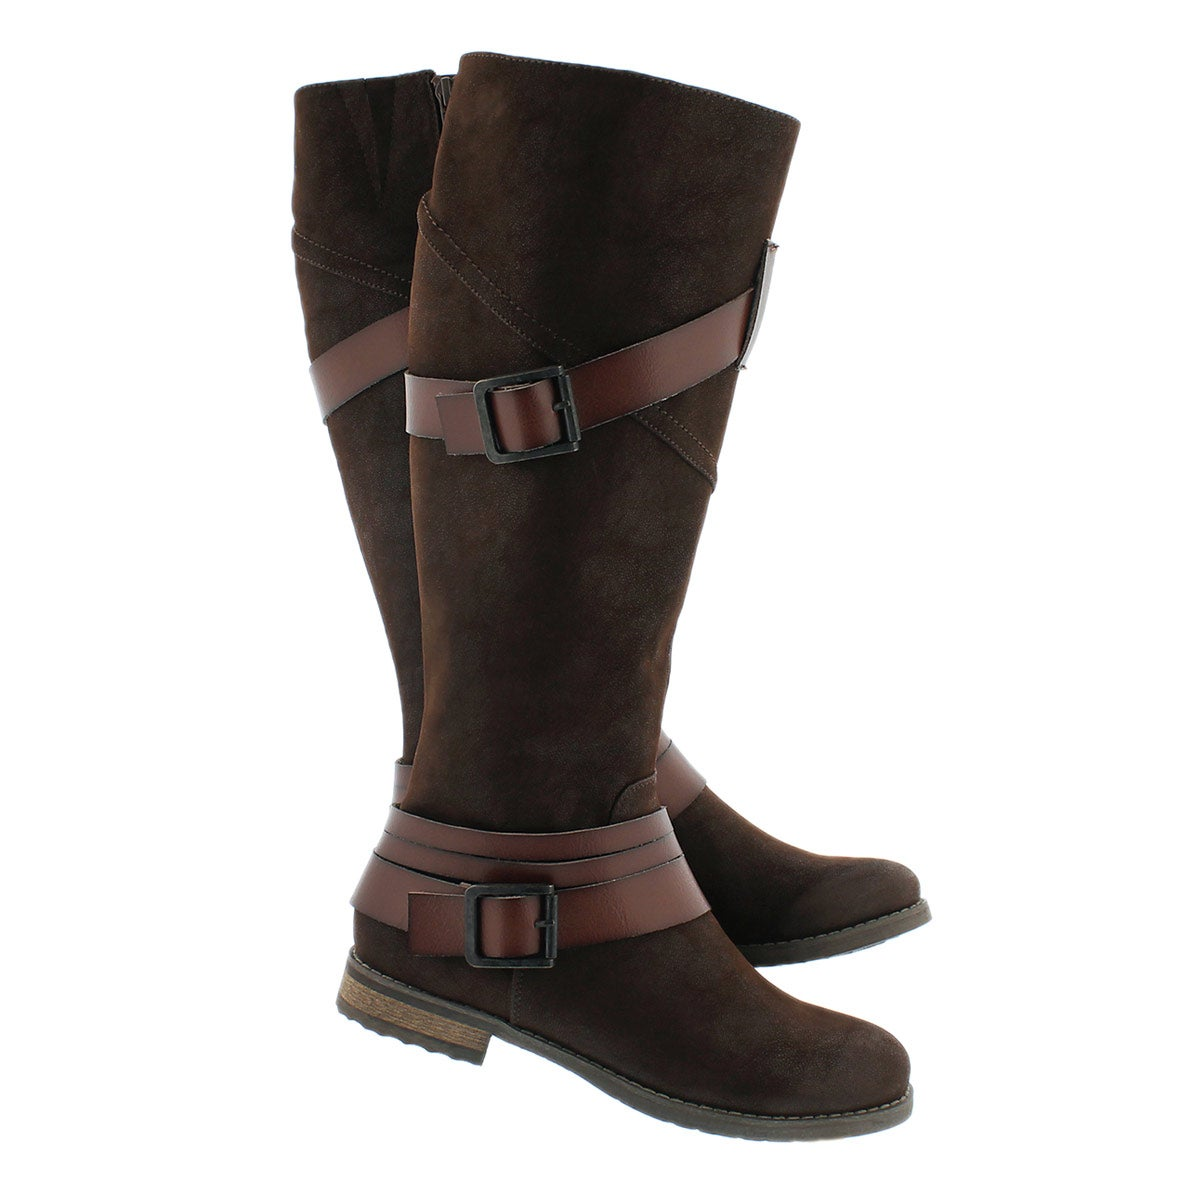 Lds Buffy brown buckle riding boot